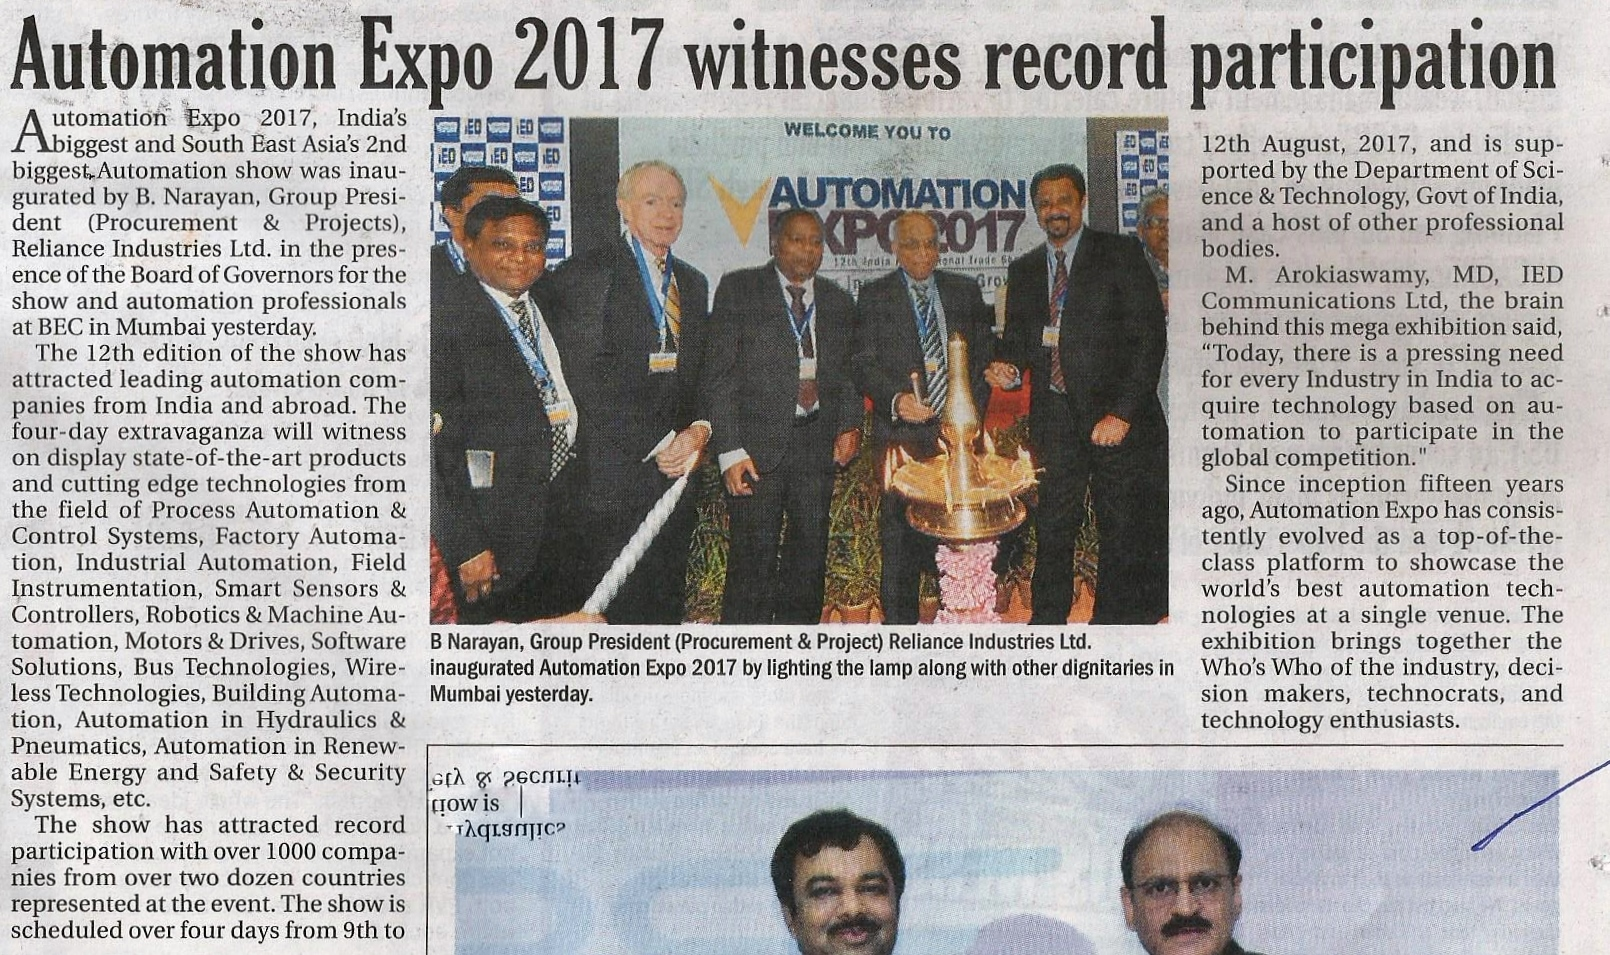 Automation Expo - Afternoon Despatch & Courier, pg 25, August 10th' 2017